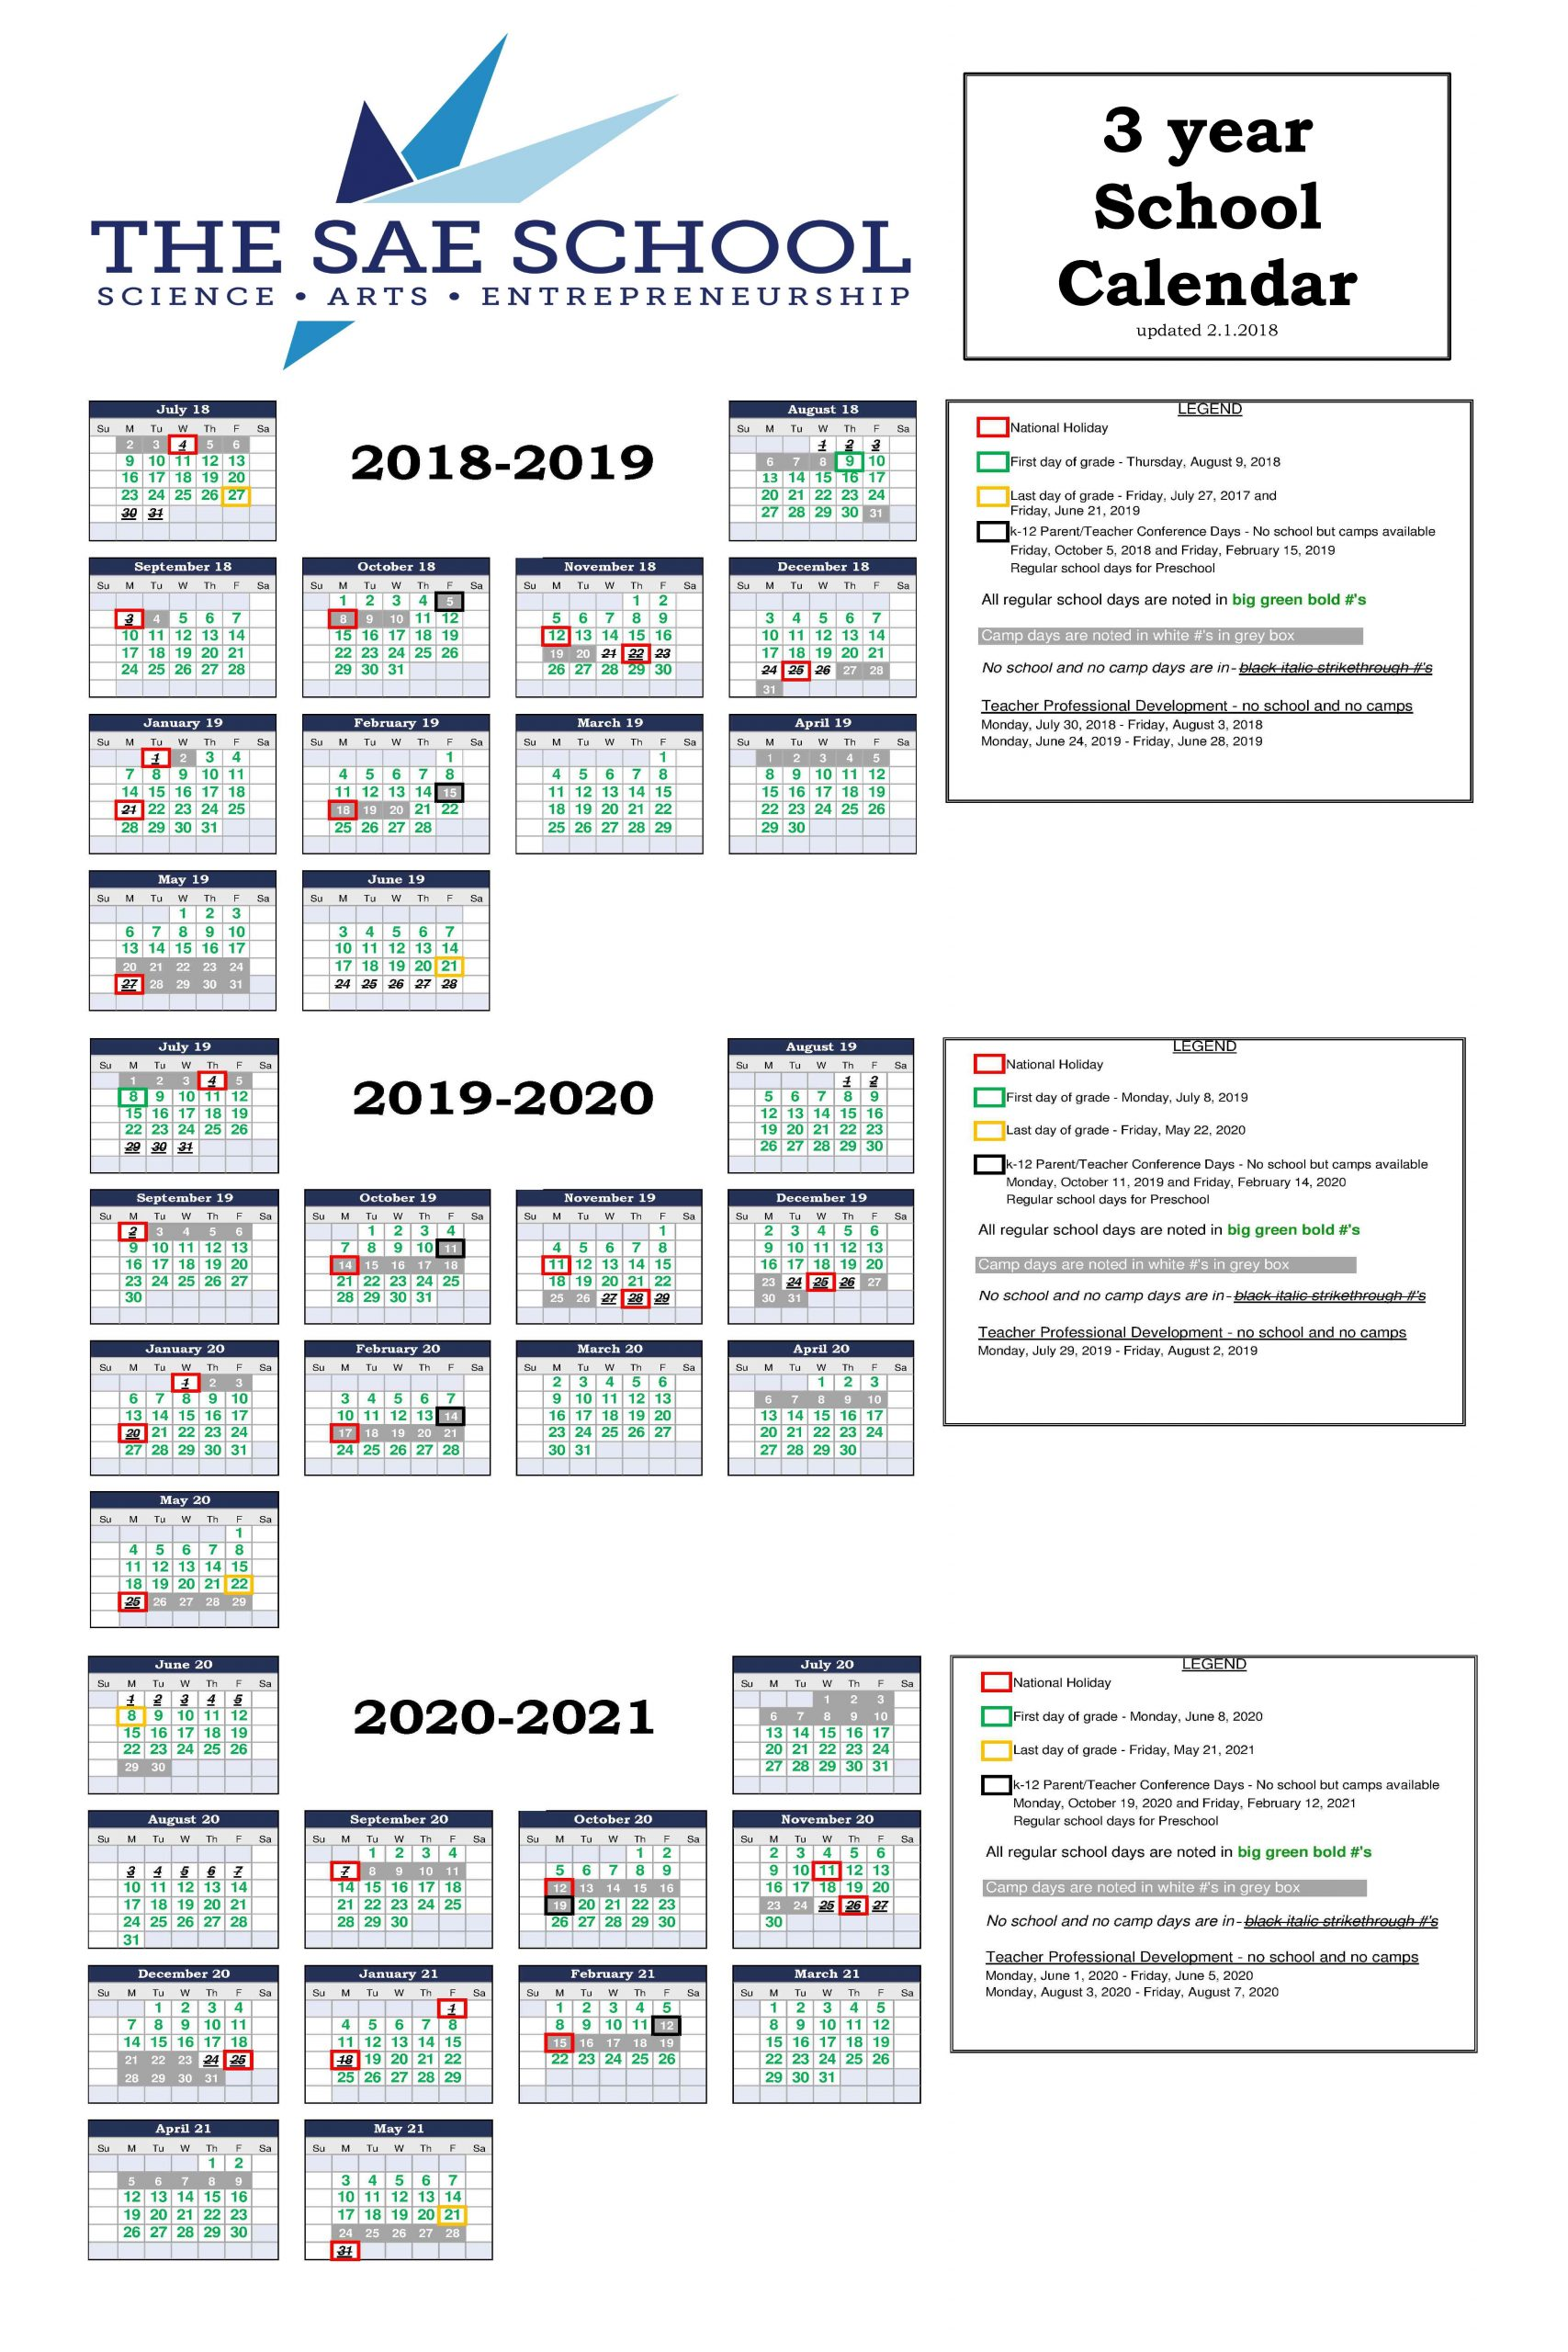 Year-Round School Calendar - The Sae School In Mableton Ga within What Is A Sample Year Round School Schedule